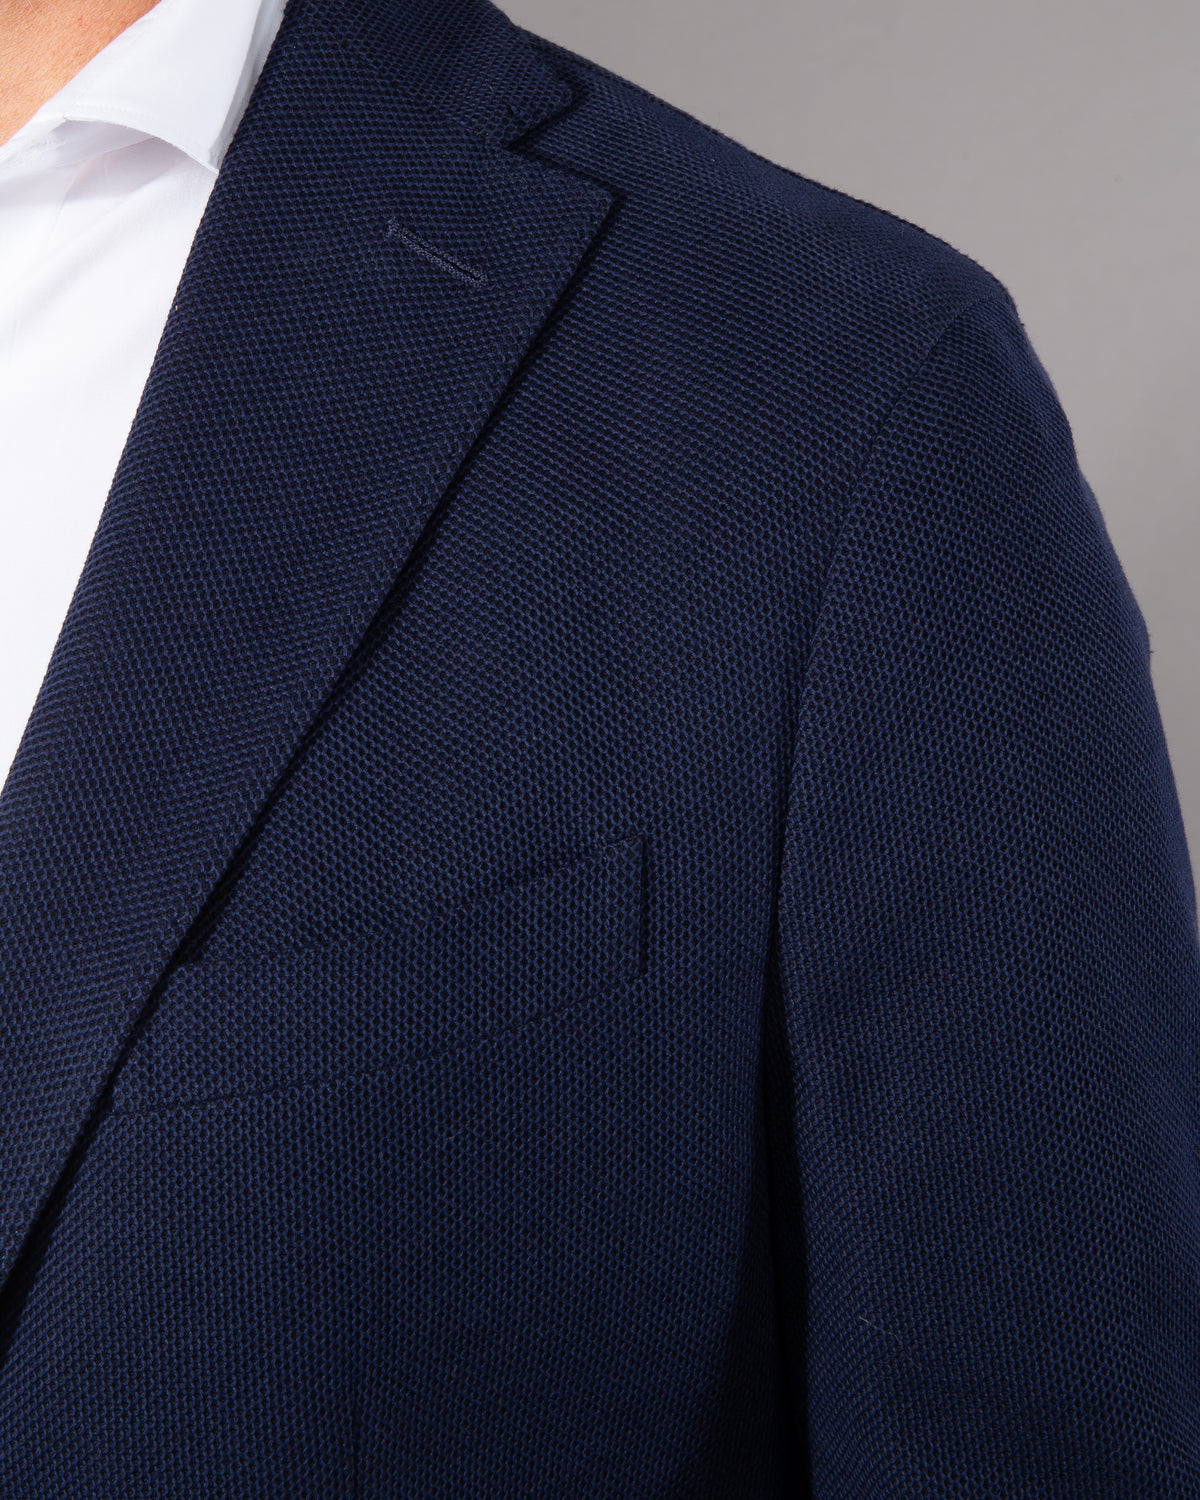 Boglioli Sakko Blazer 100% cotton navy dark blue